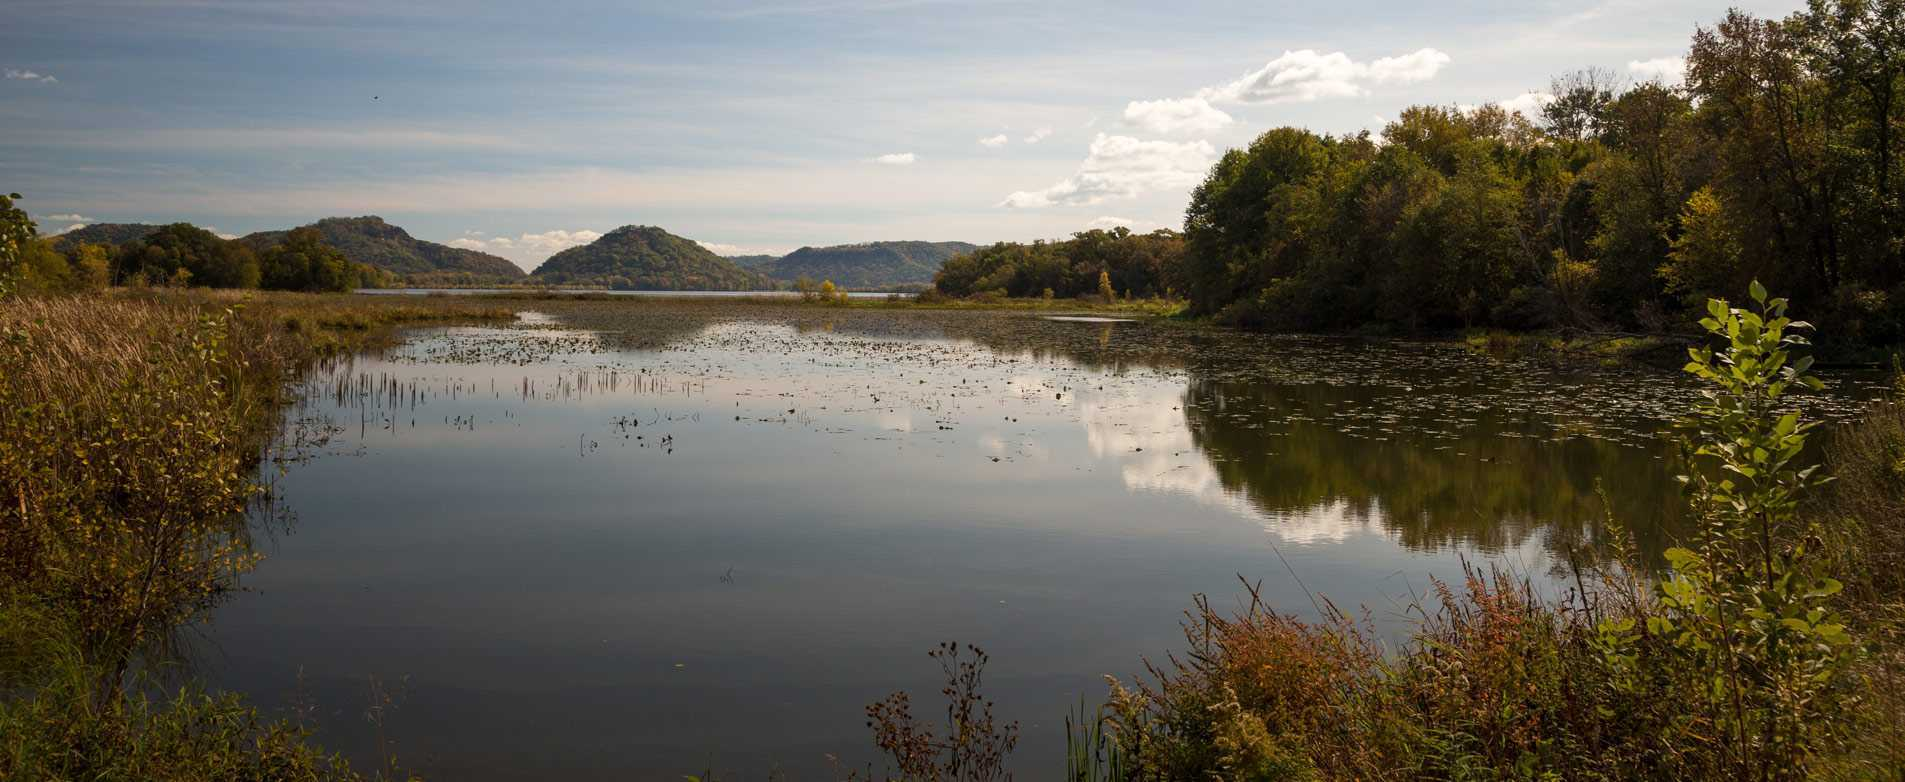 Trempealeau National Wildlife Refuge